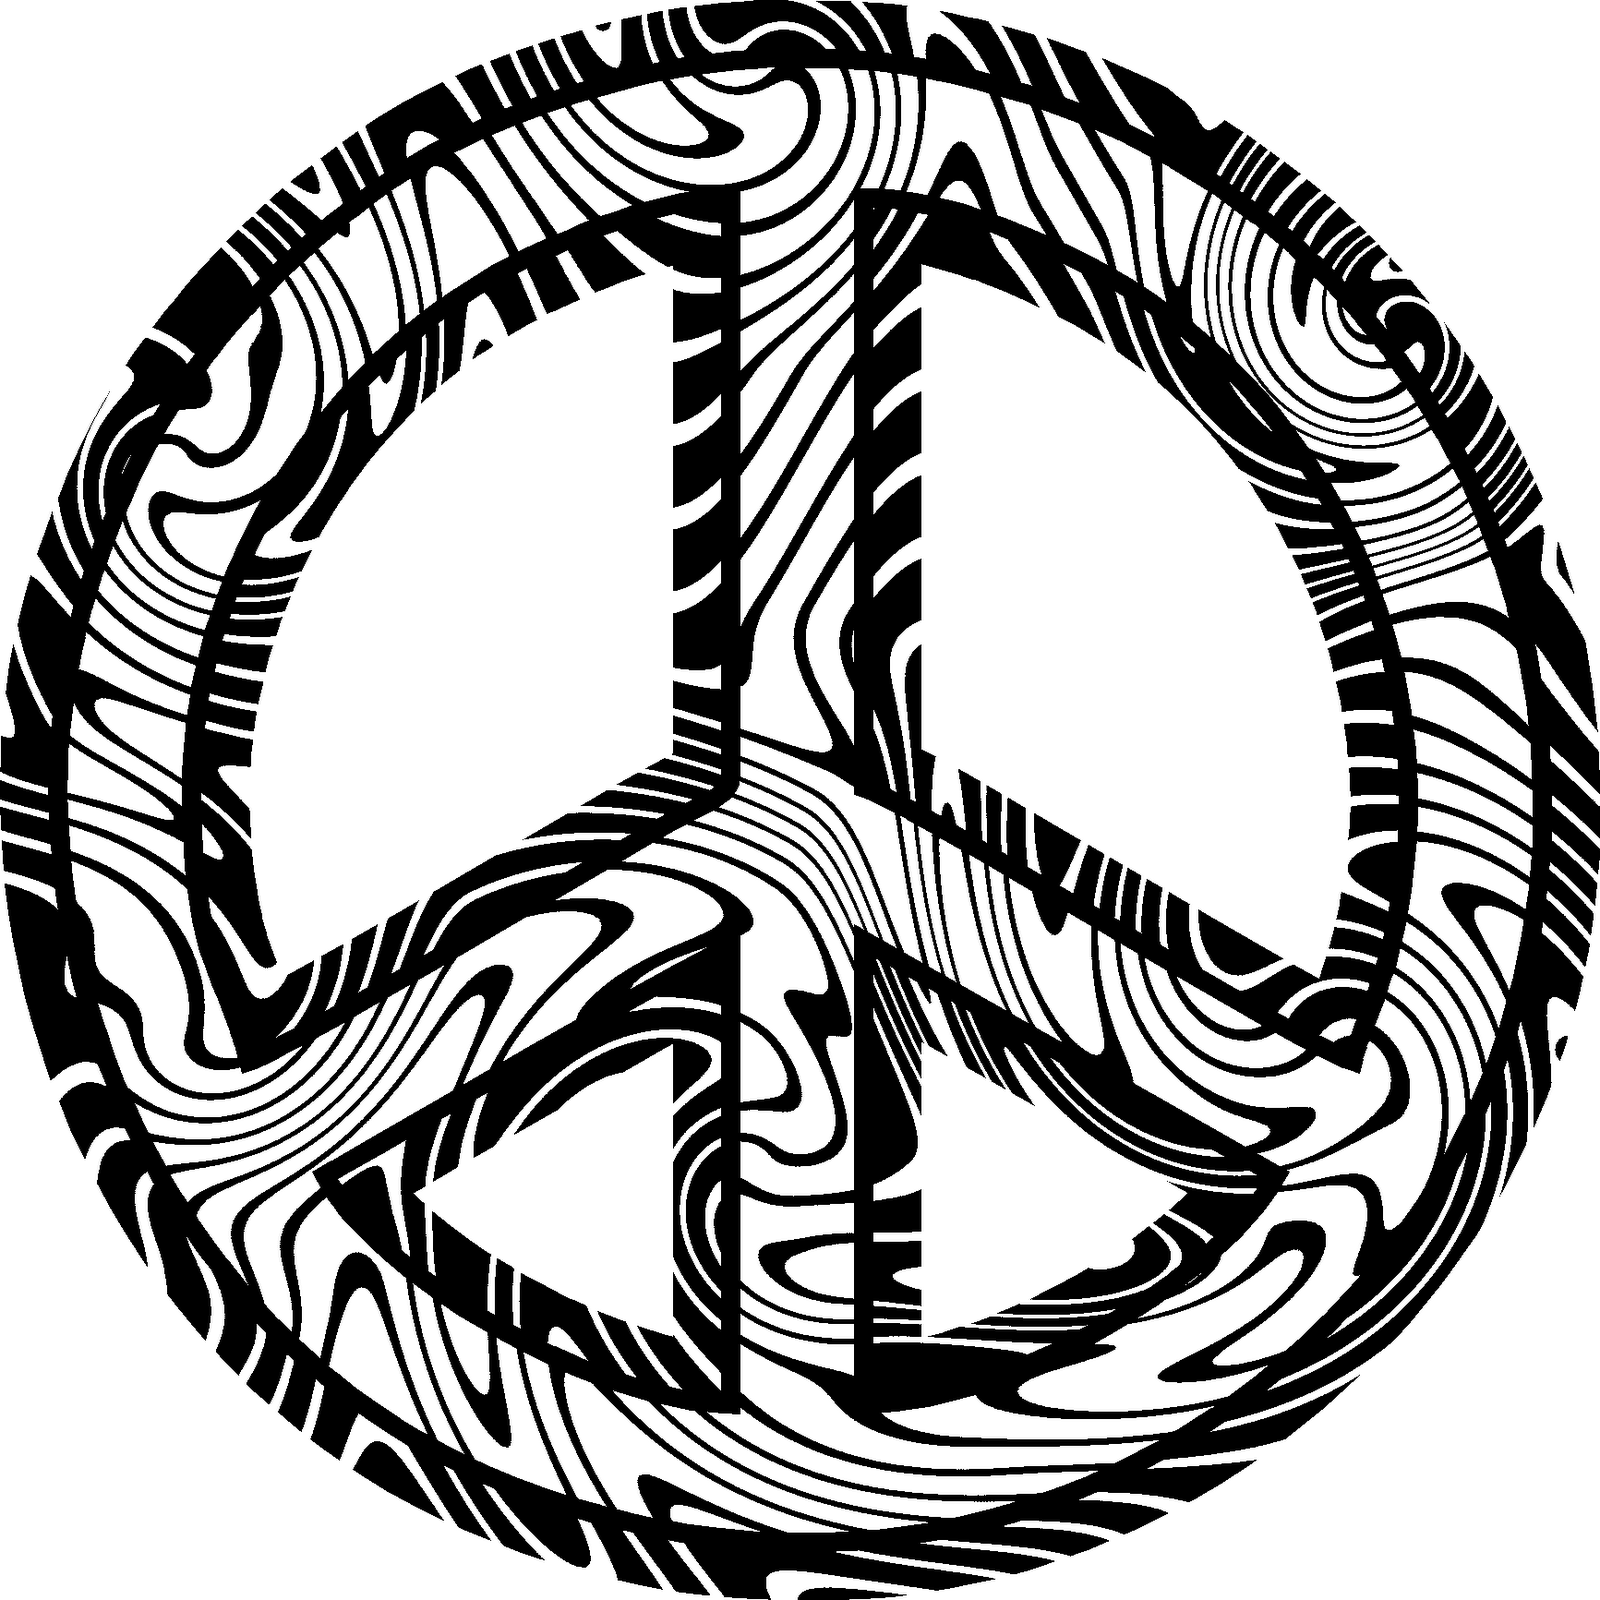 hard coloring pages materials coloring sheet about peace coloring pens and pencils